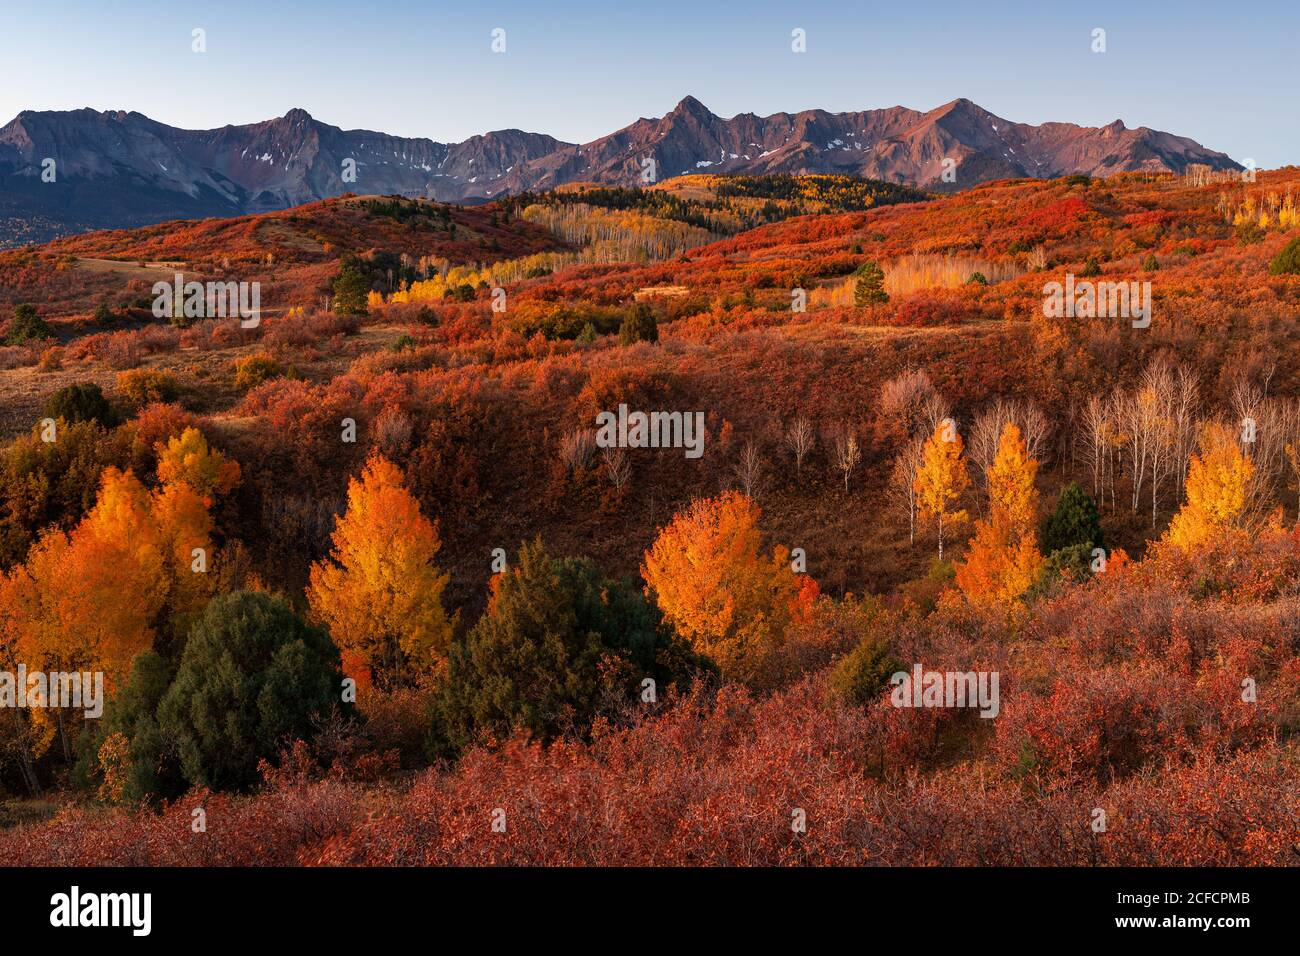 Dallas Divide With Fall Colors In The San Juan Mountains Colorado Stock Photo Alamy